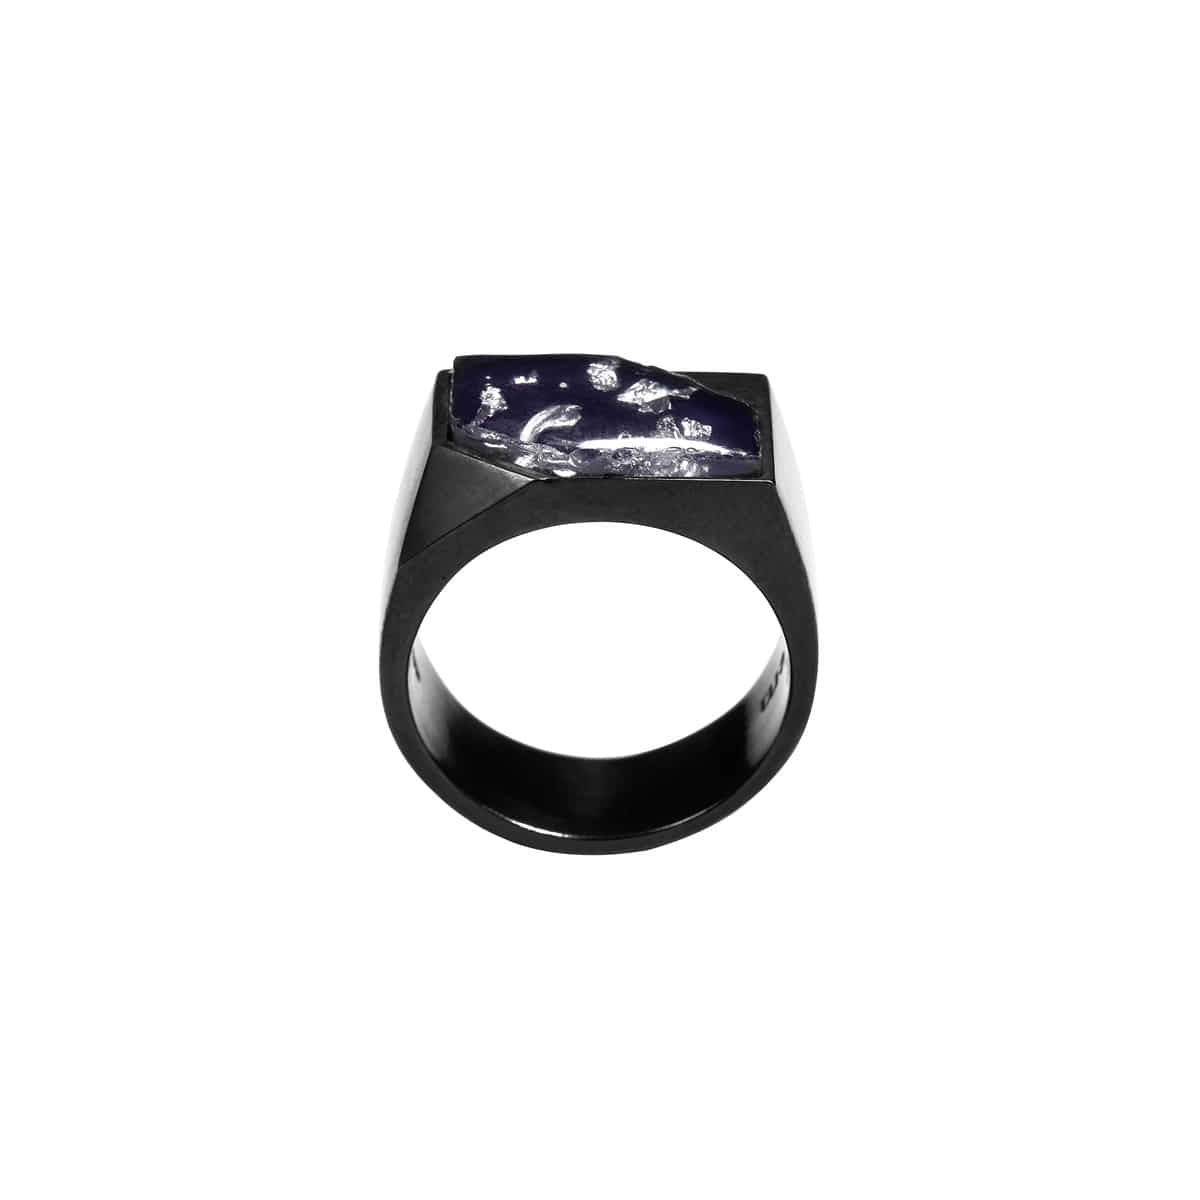 VAUX LE VICOMTE Ⅱ ring(BLACK)